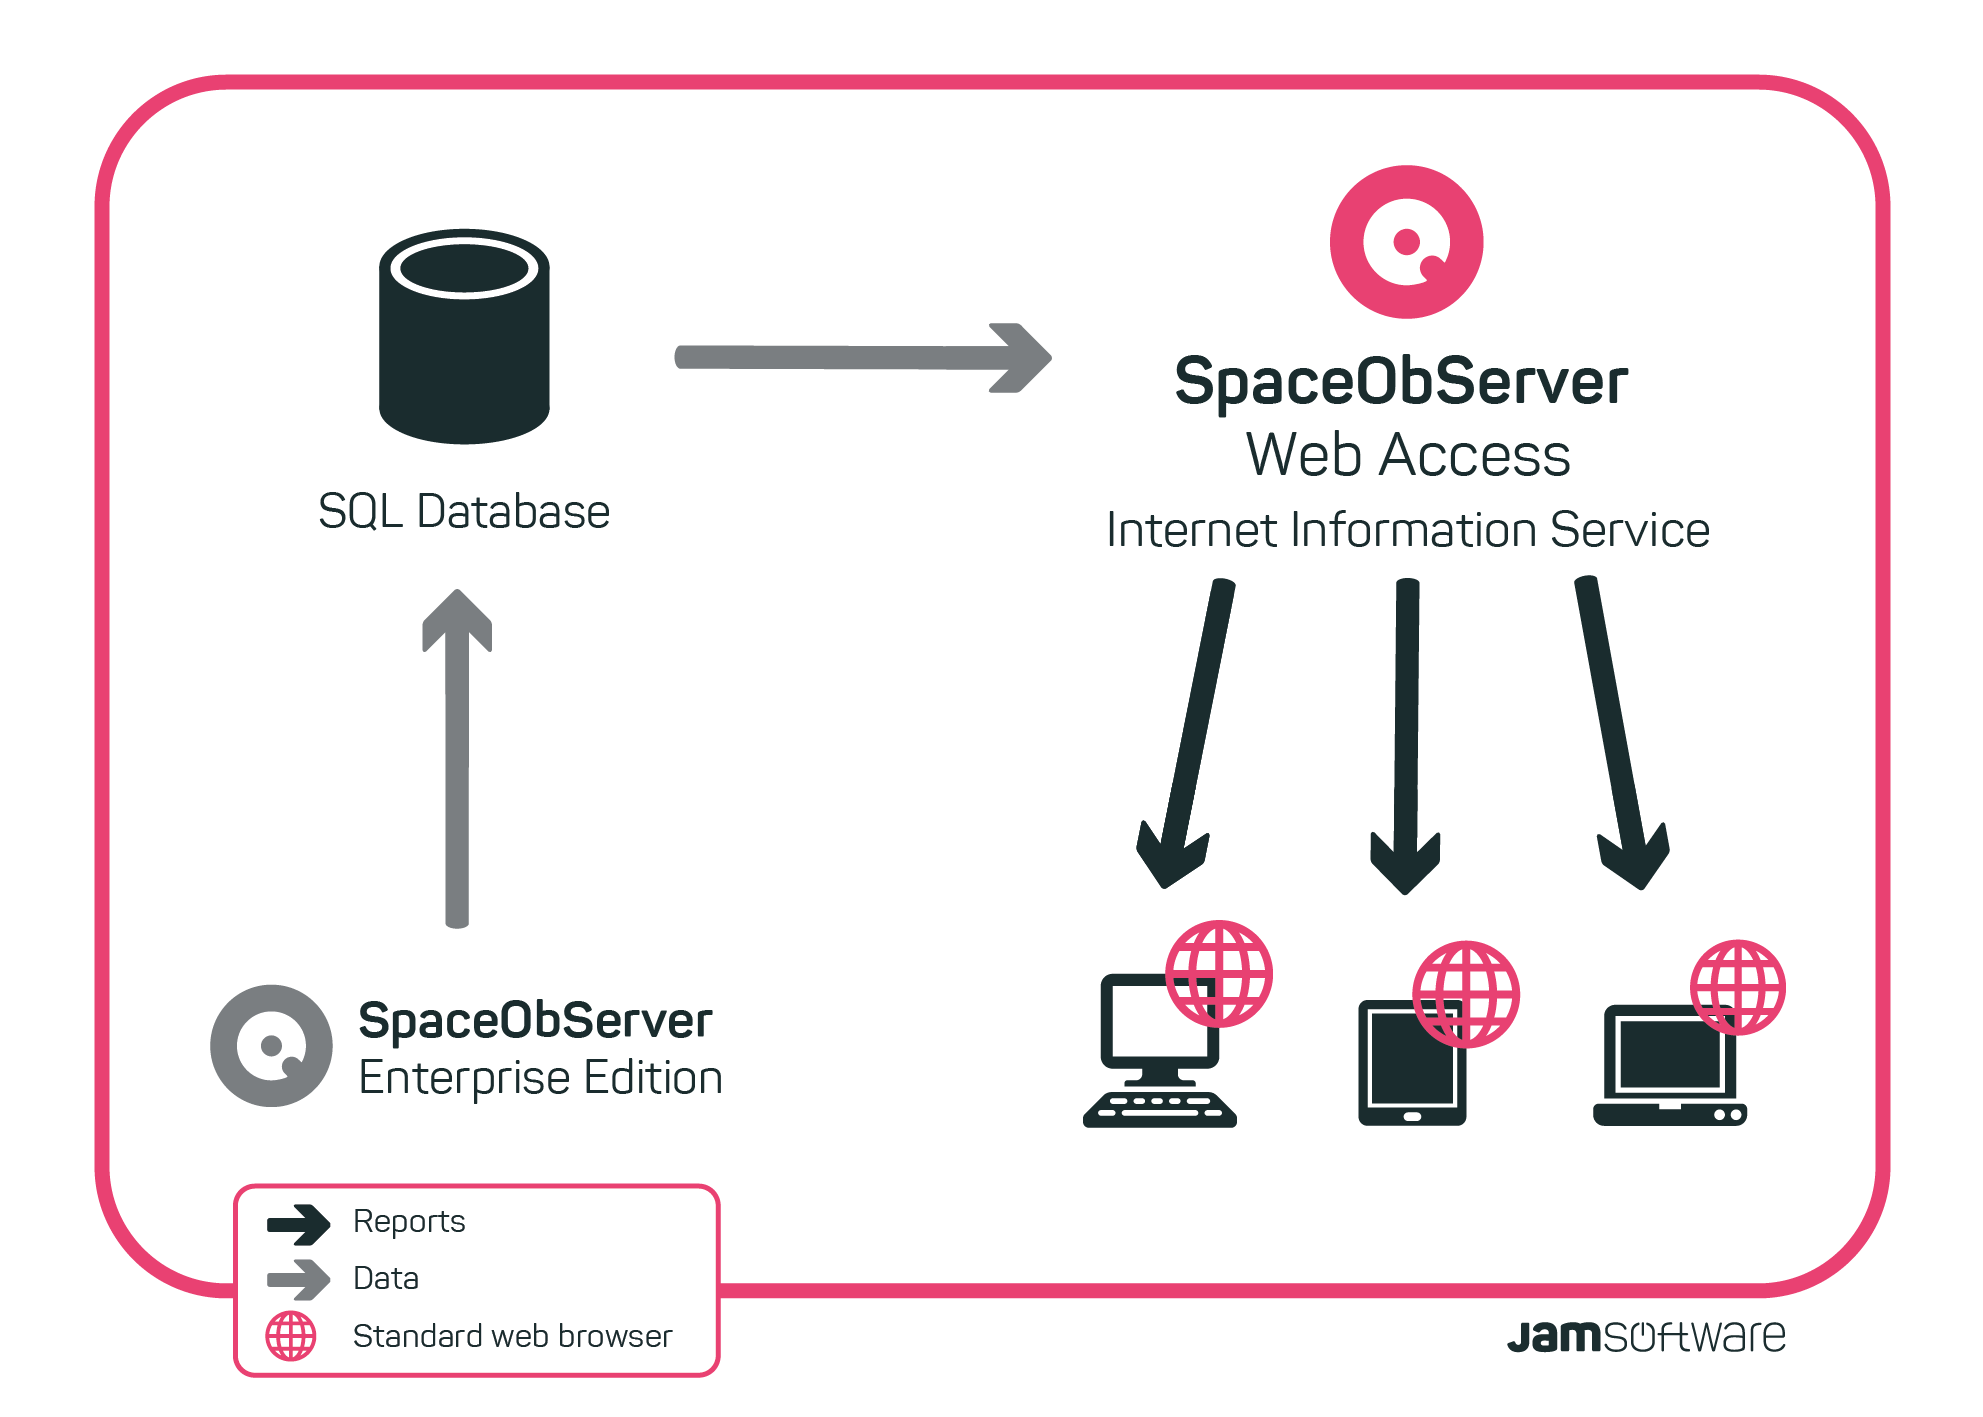 Chart showing functioning of SpaceObServer and Web Access